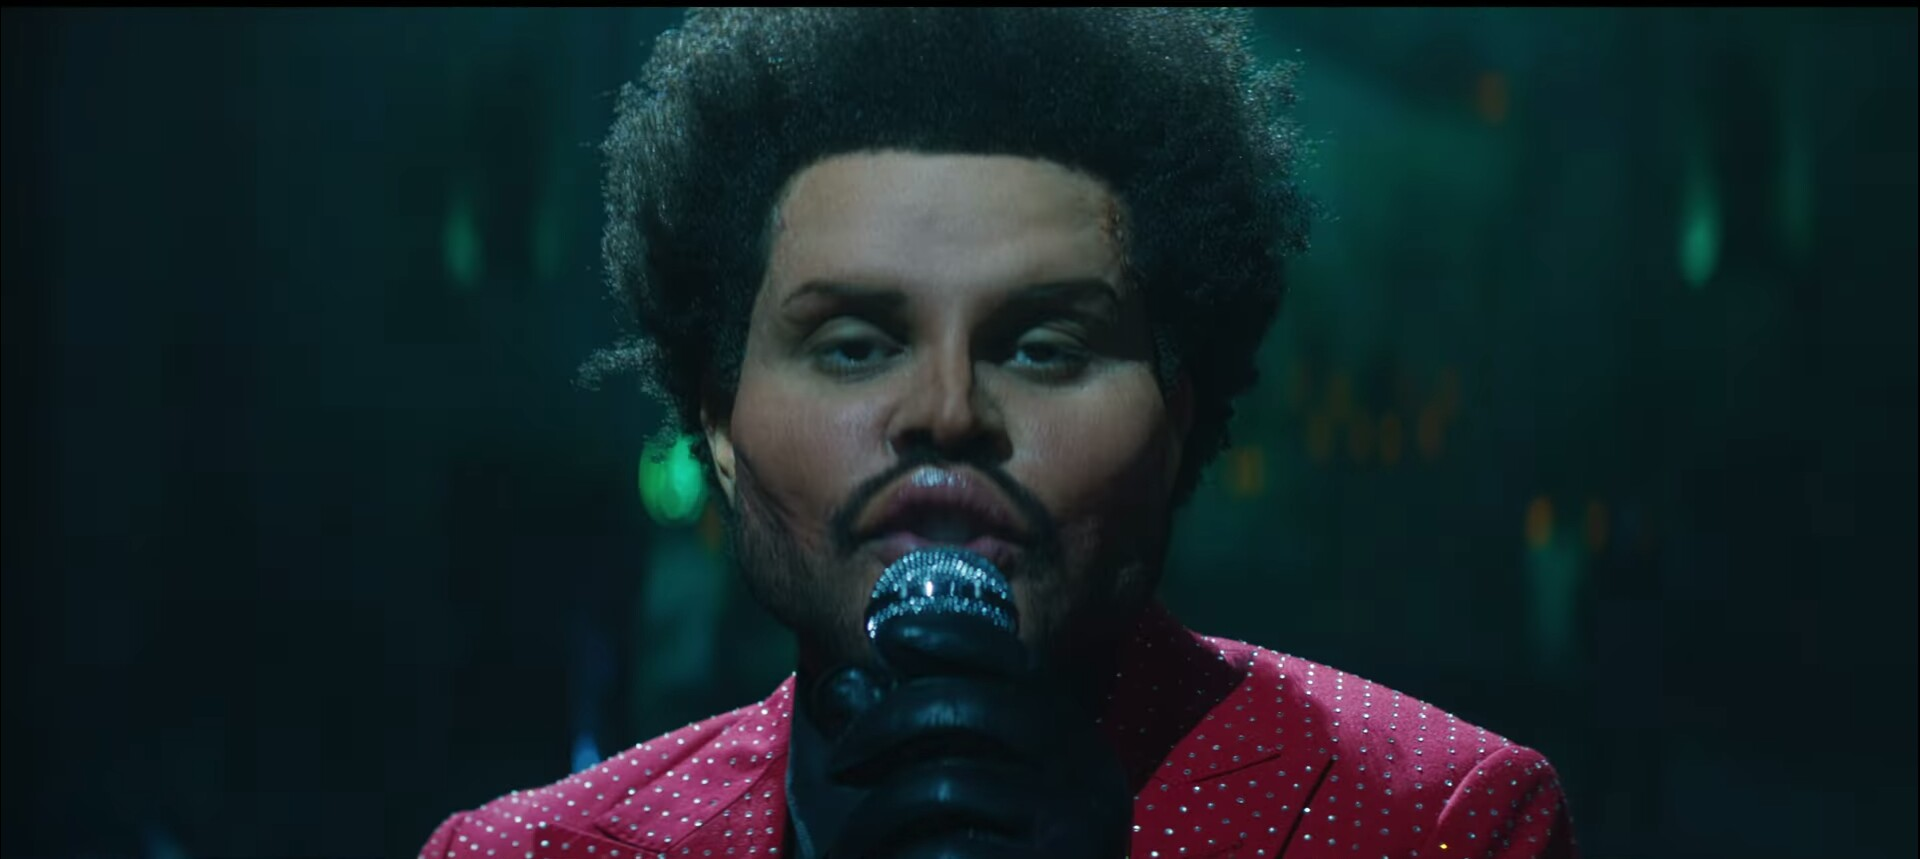 What Happened to The Weeknd Face? The Plastic Surgery Look Shocks Fans